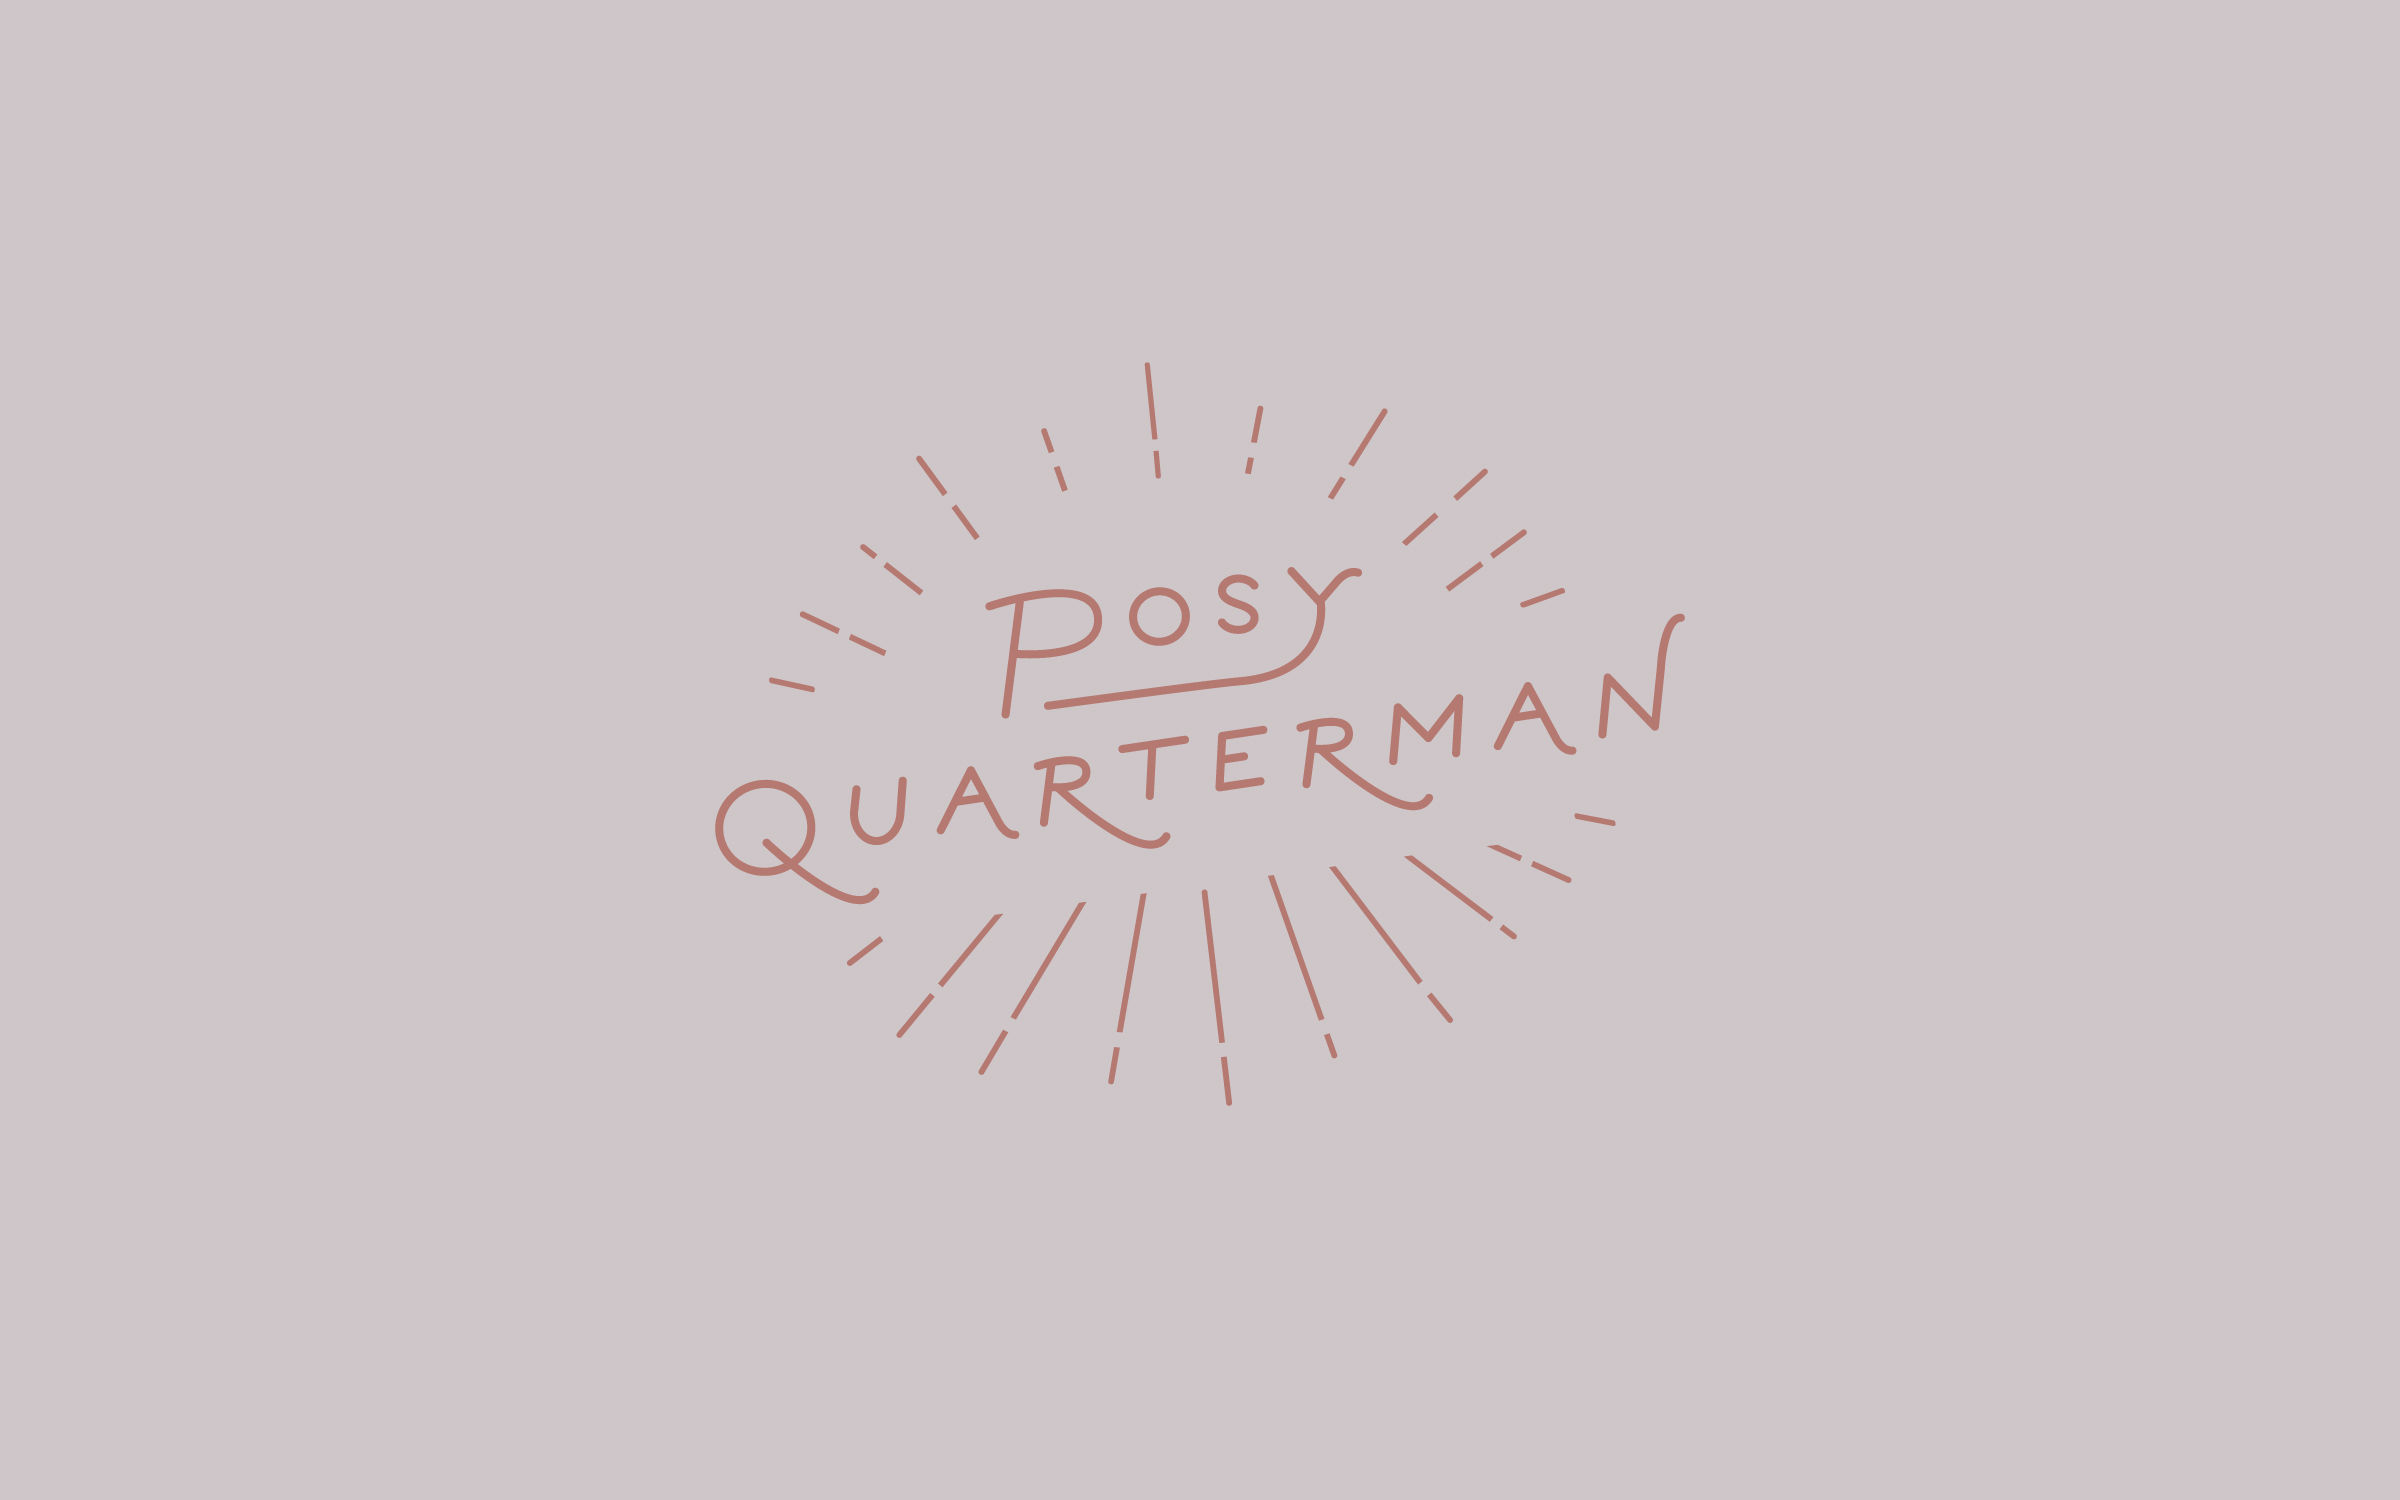 Posy+Quarterman-13.jpg